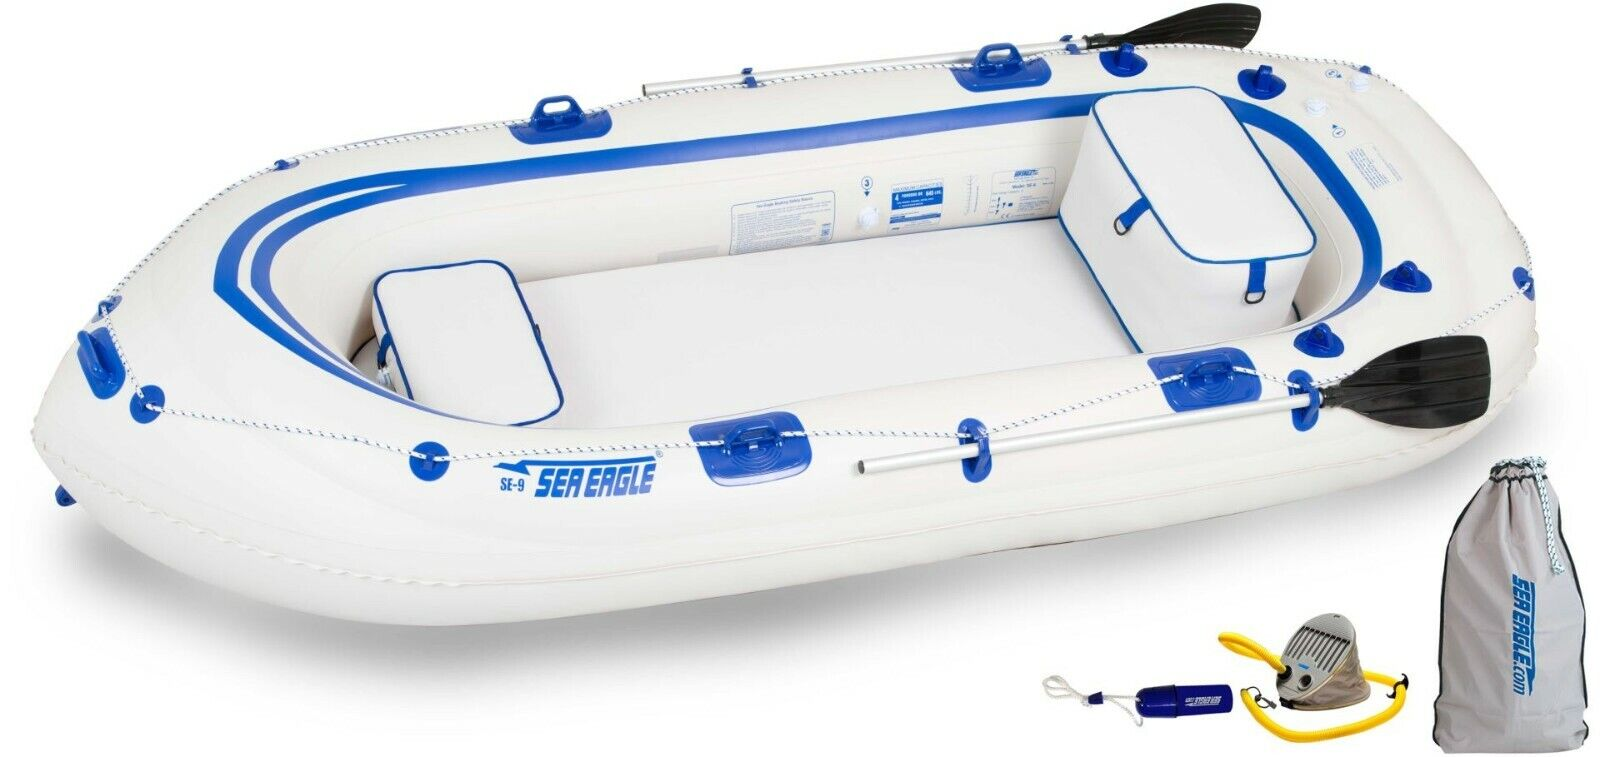 Sea Eagle 9 Inflatable Boat Startup Package 2 Seats, 2 Oars,